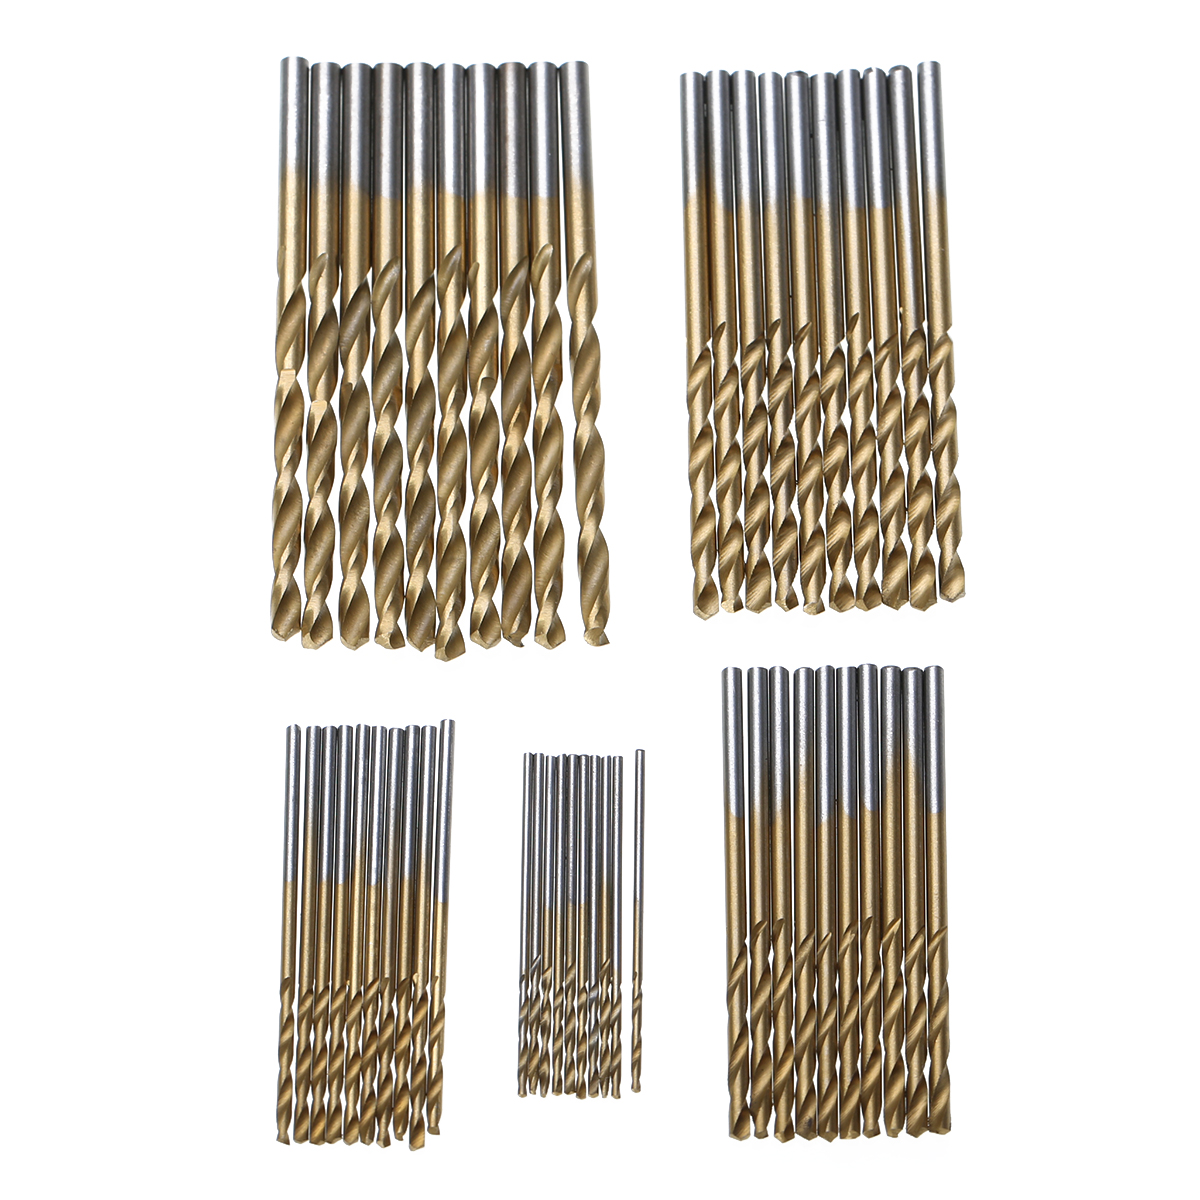 50pcs Titanium Coated HSS Drill Bit Set High Speed Steel Twist Woodworking Drilling Tools  1/1.5/2/2.5/3mm 50pcs set twist drill bit set saw set 1 1 5 2 2 5 3mm hss high steel titanium coated woodworking wood tool drilling for metal